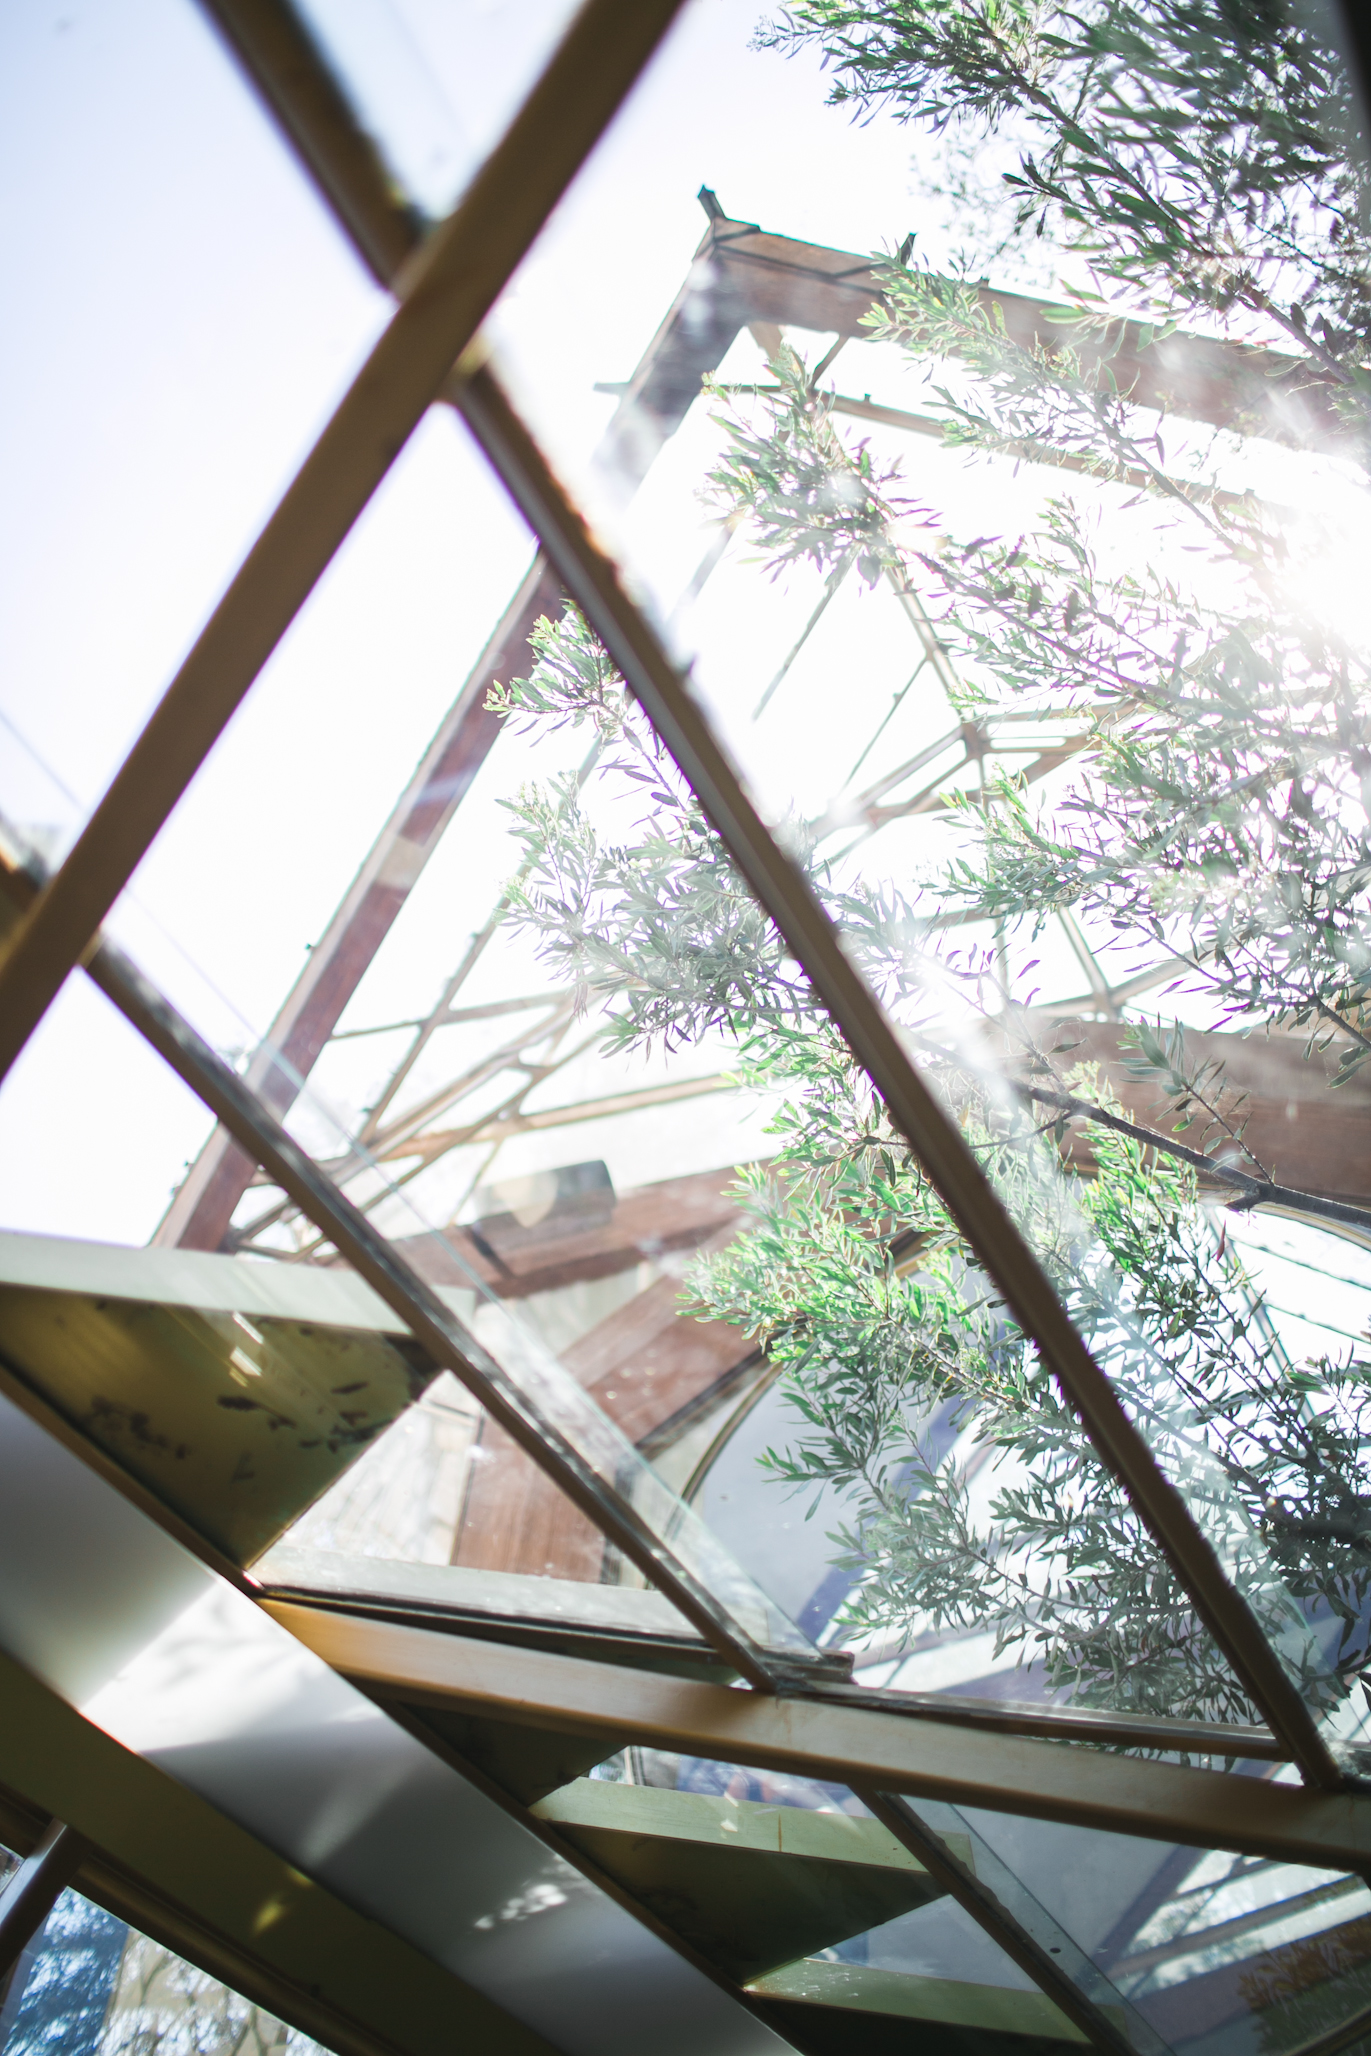 The glass structure of the chapel allows the perfect amount lighting to enter in.